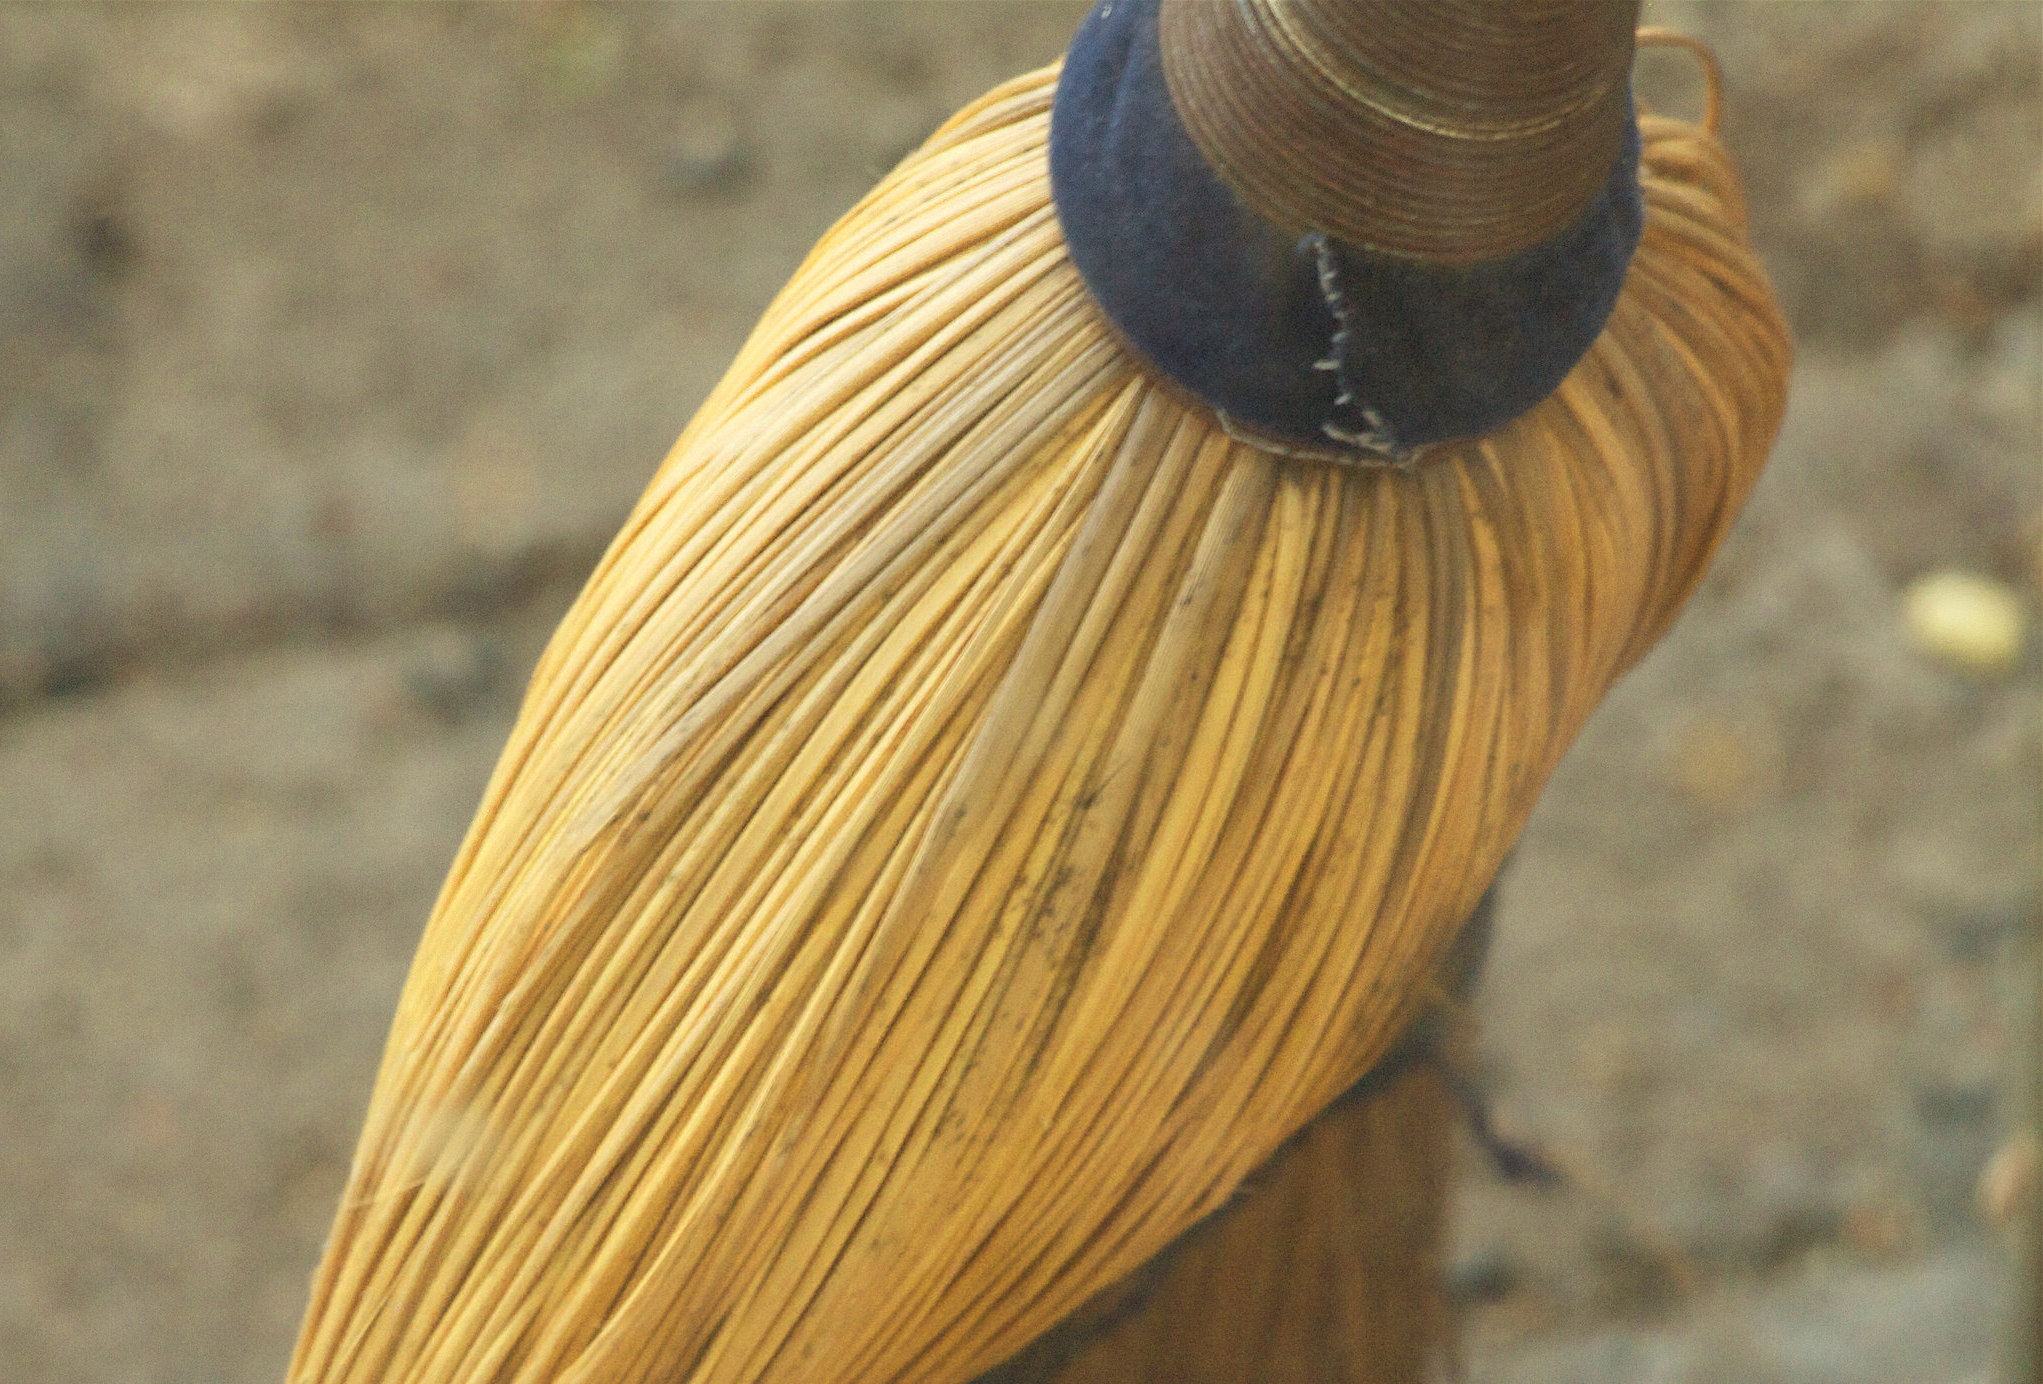 The broom prophet: Lessons from a craftsman on sanctified work